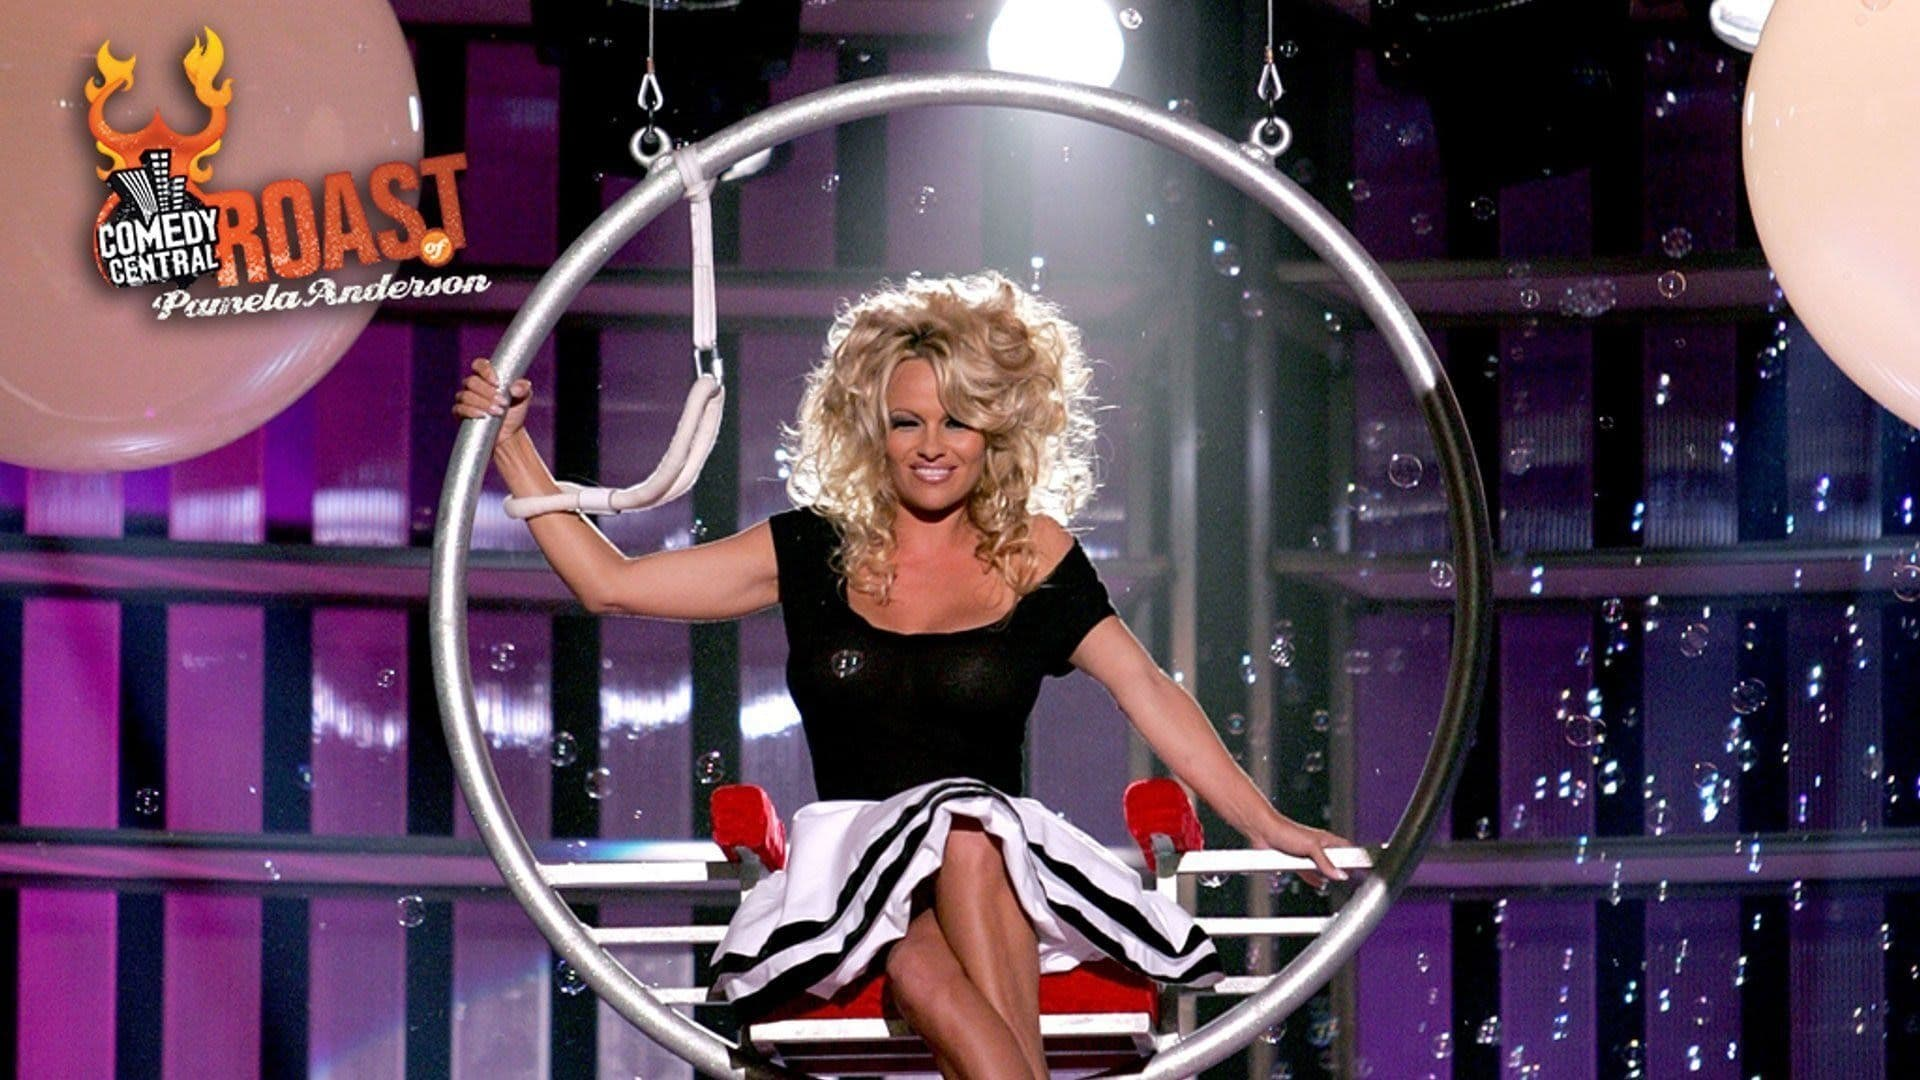 Comedy Central Roast of Pamela Anderson: Uncensored on iTunes